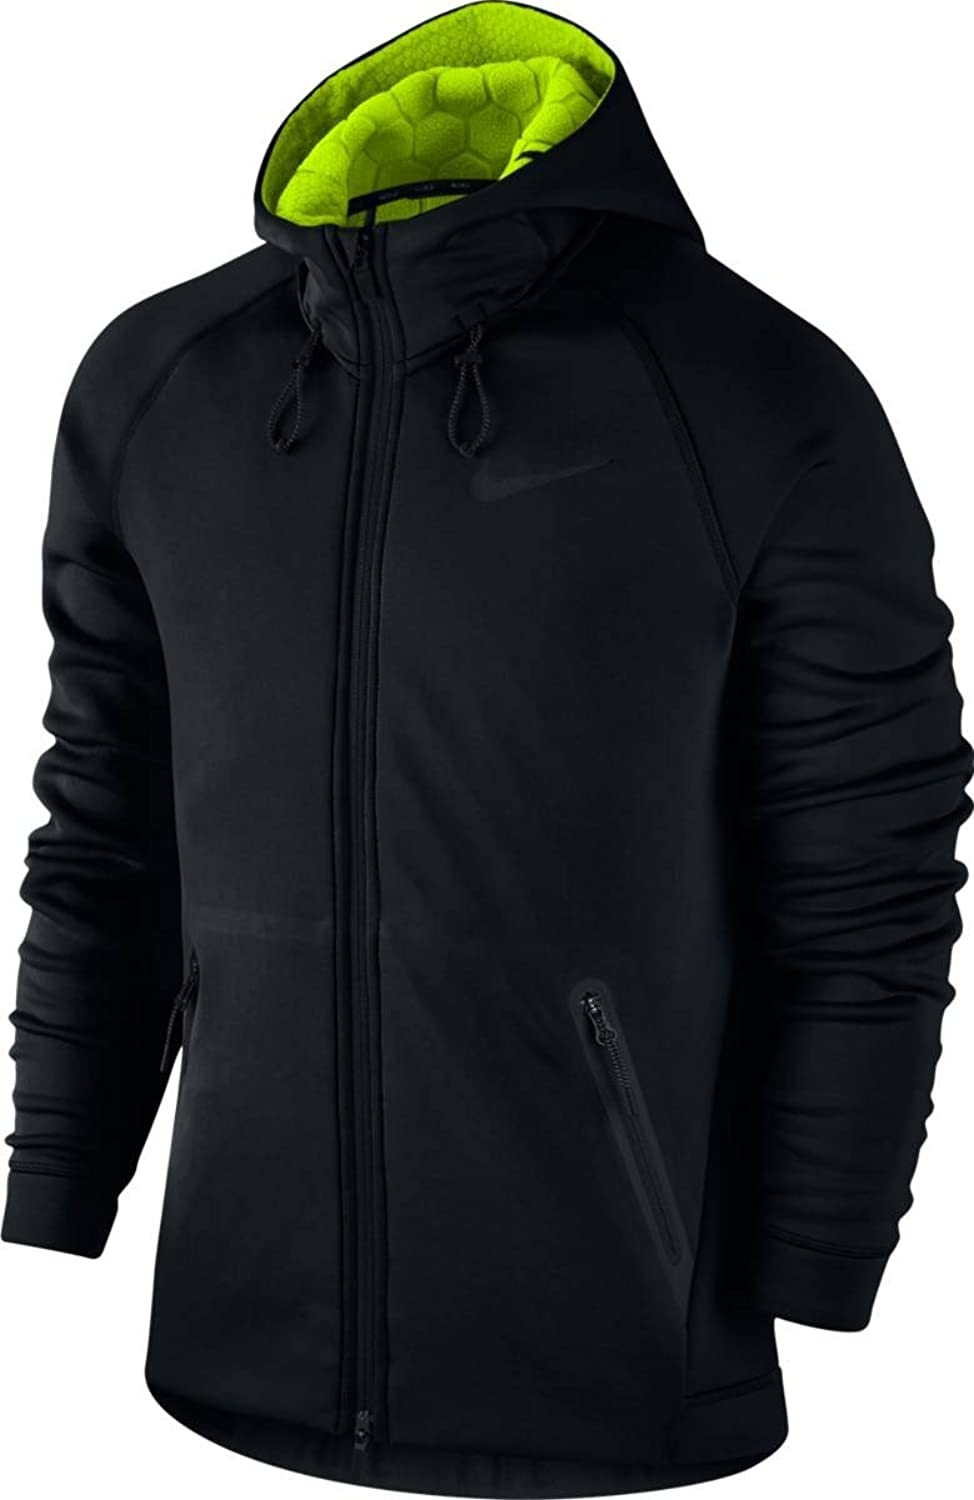 NIKE Therma-Sphere Max Mens Training Hoodie Black 800227 010